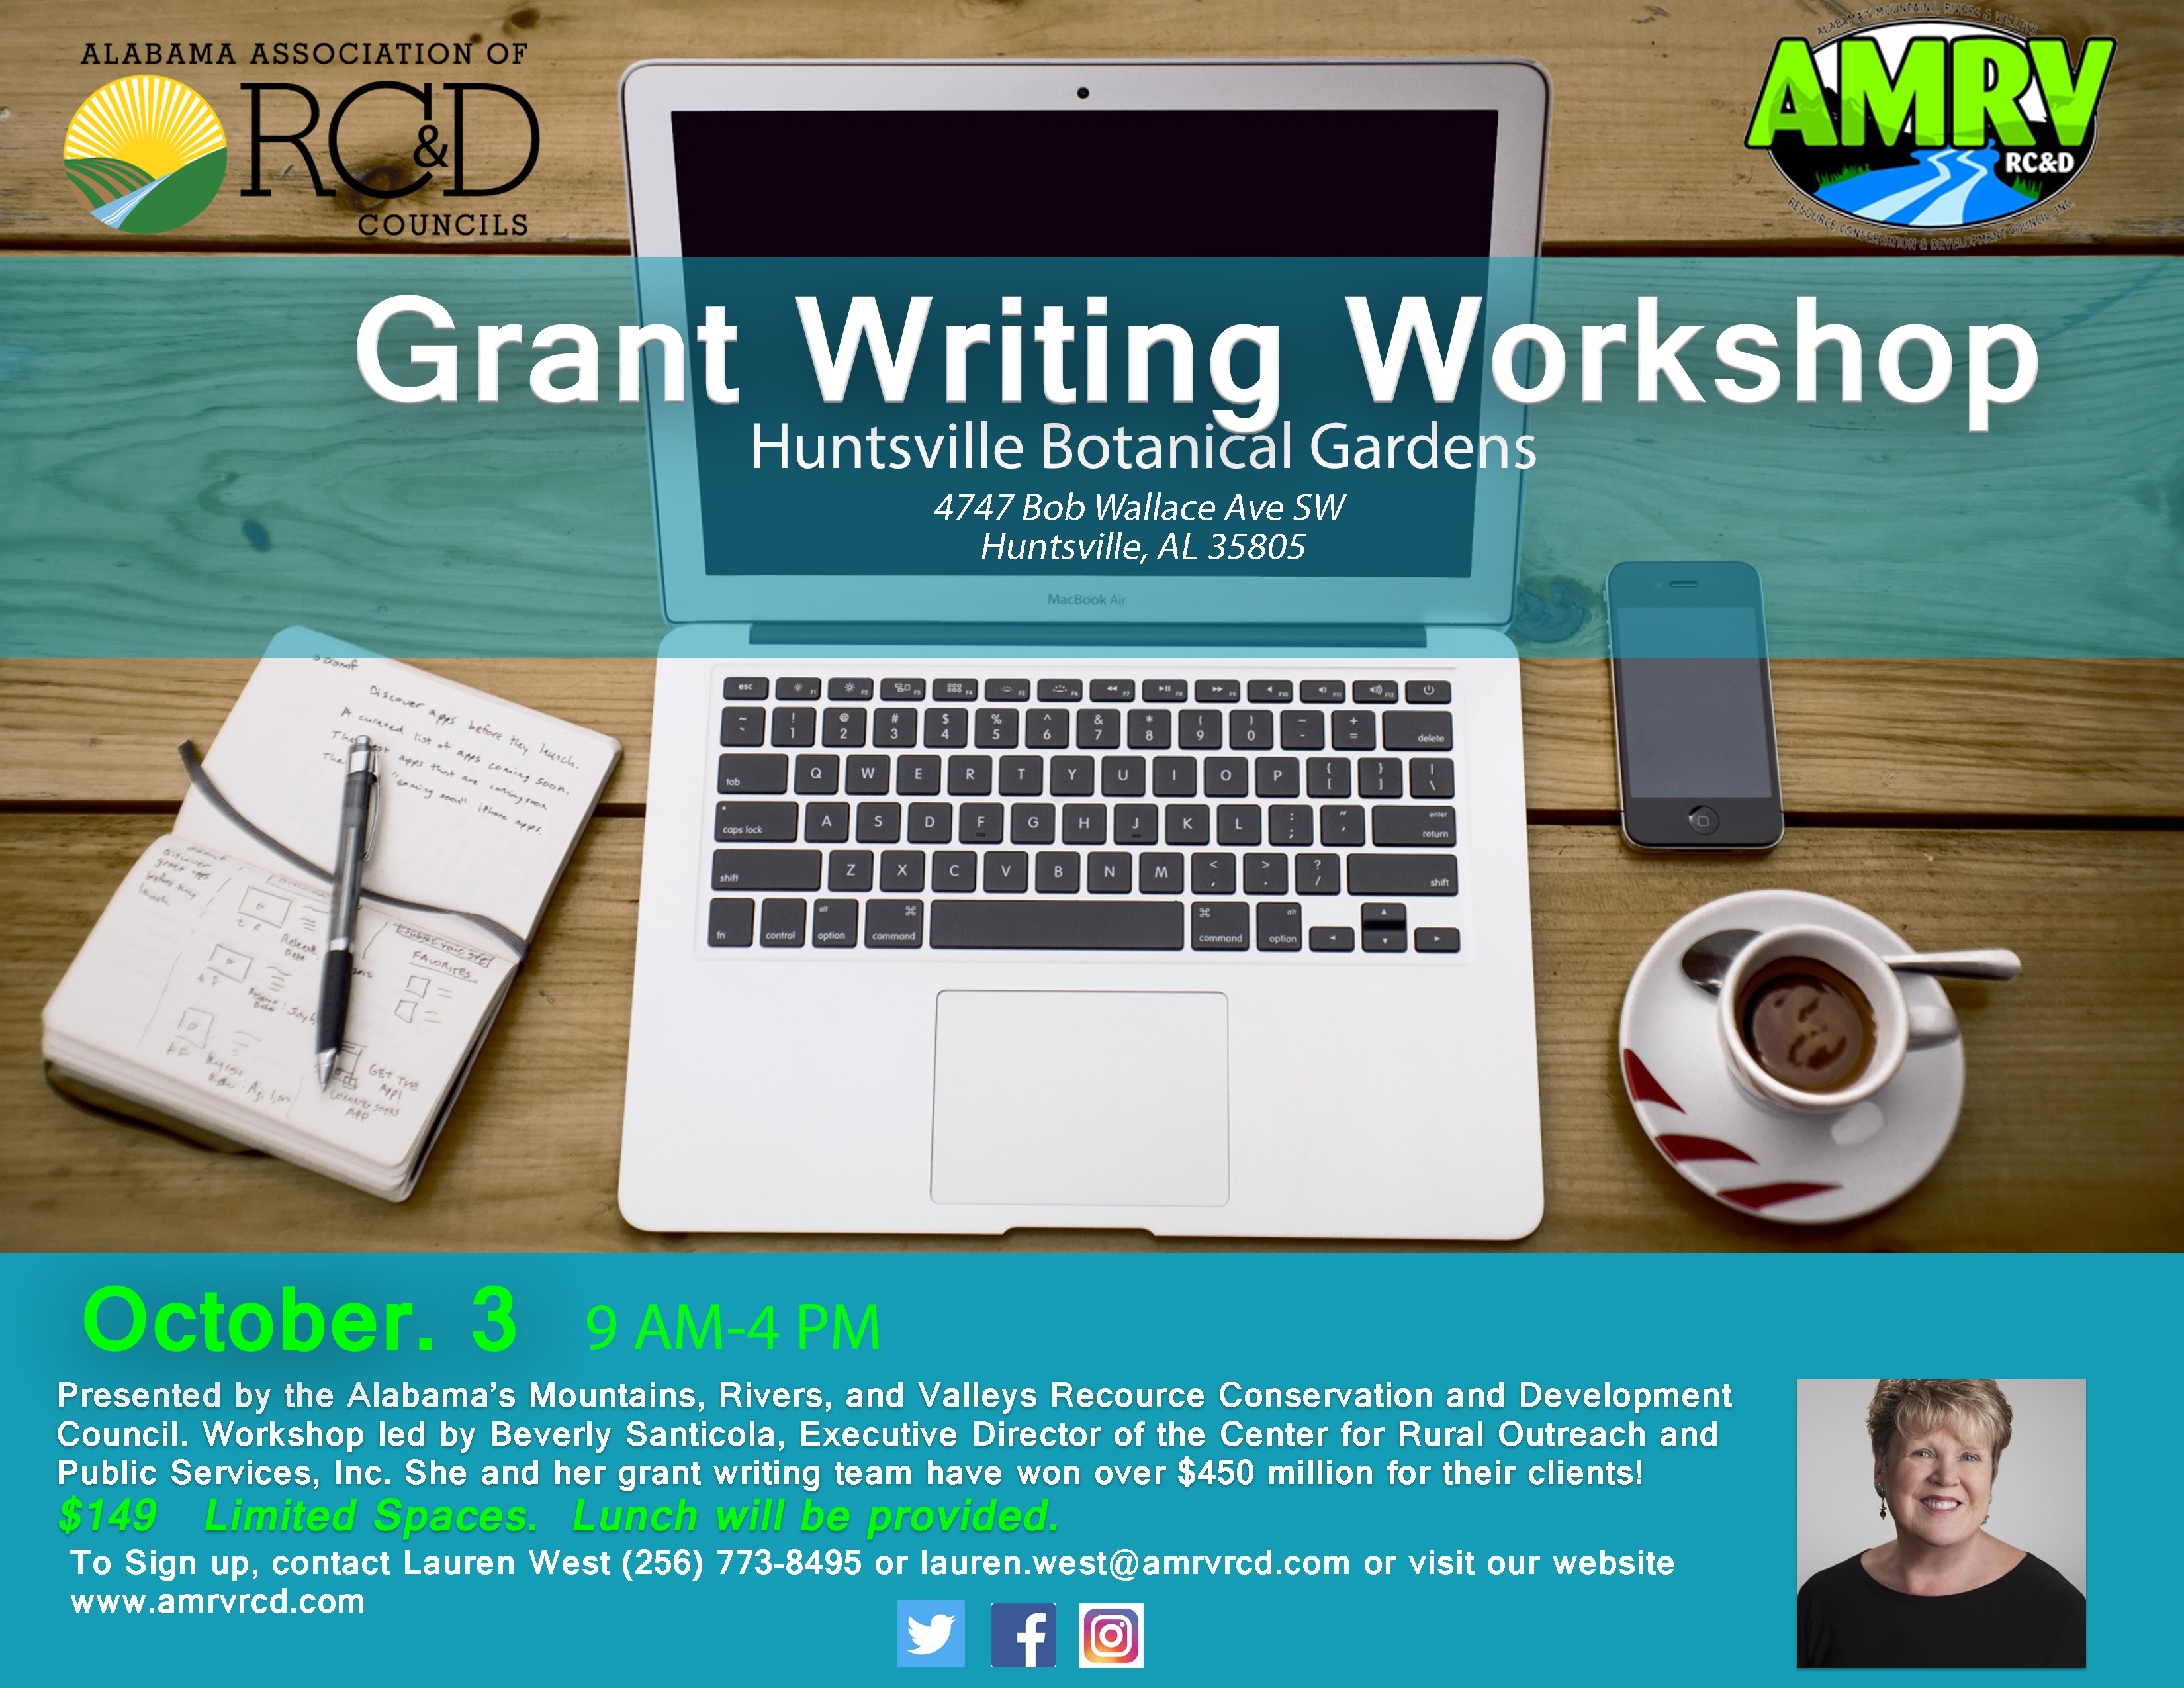 Grant writing services workshops 2017 indianapolis